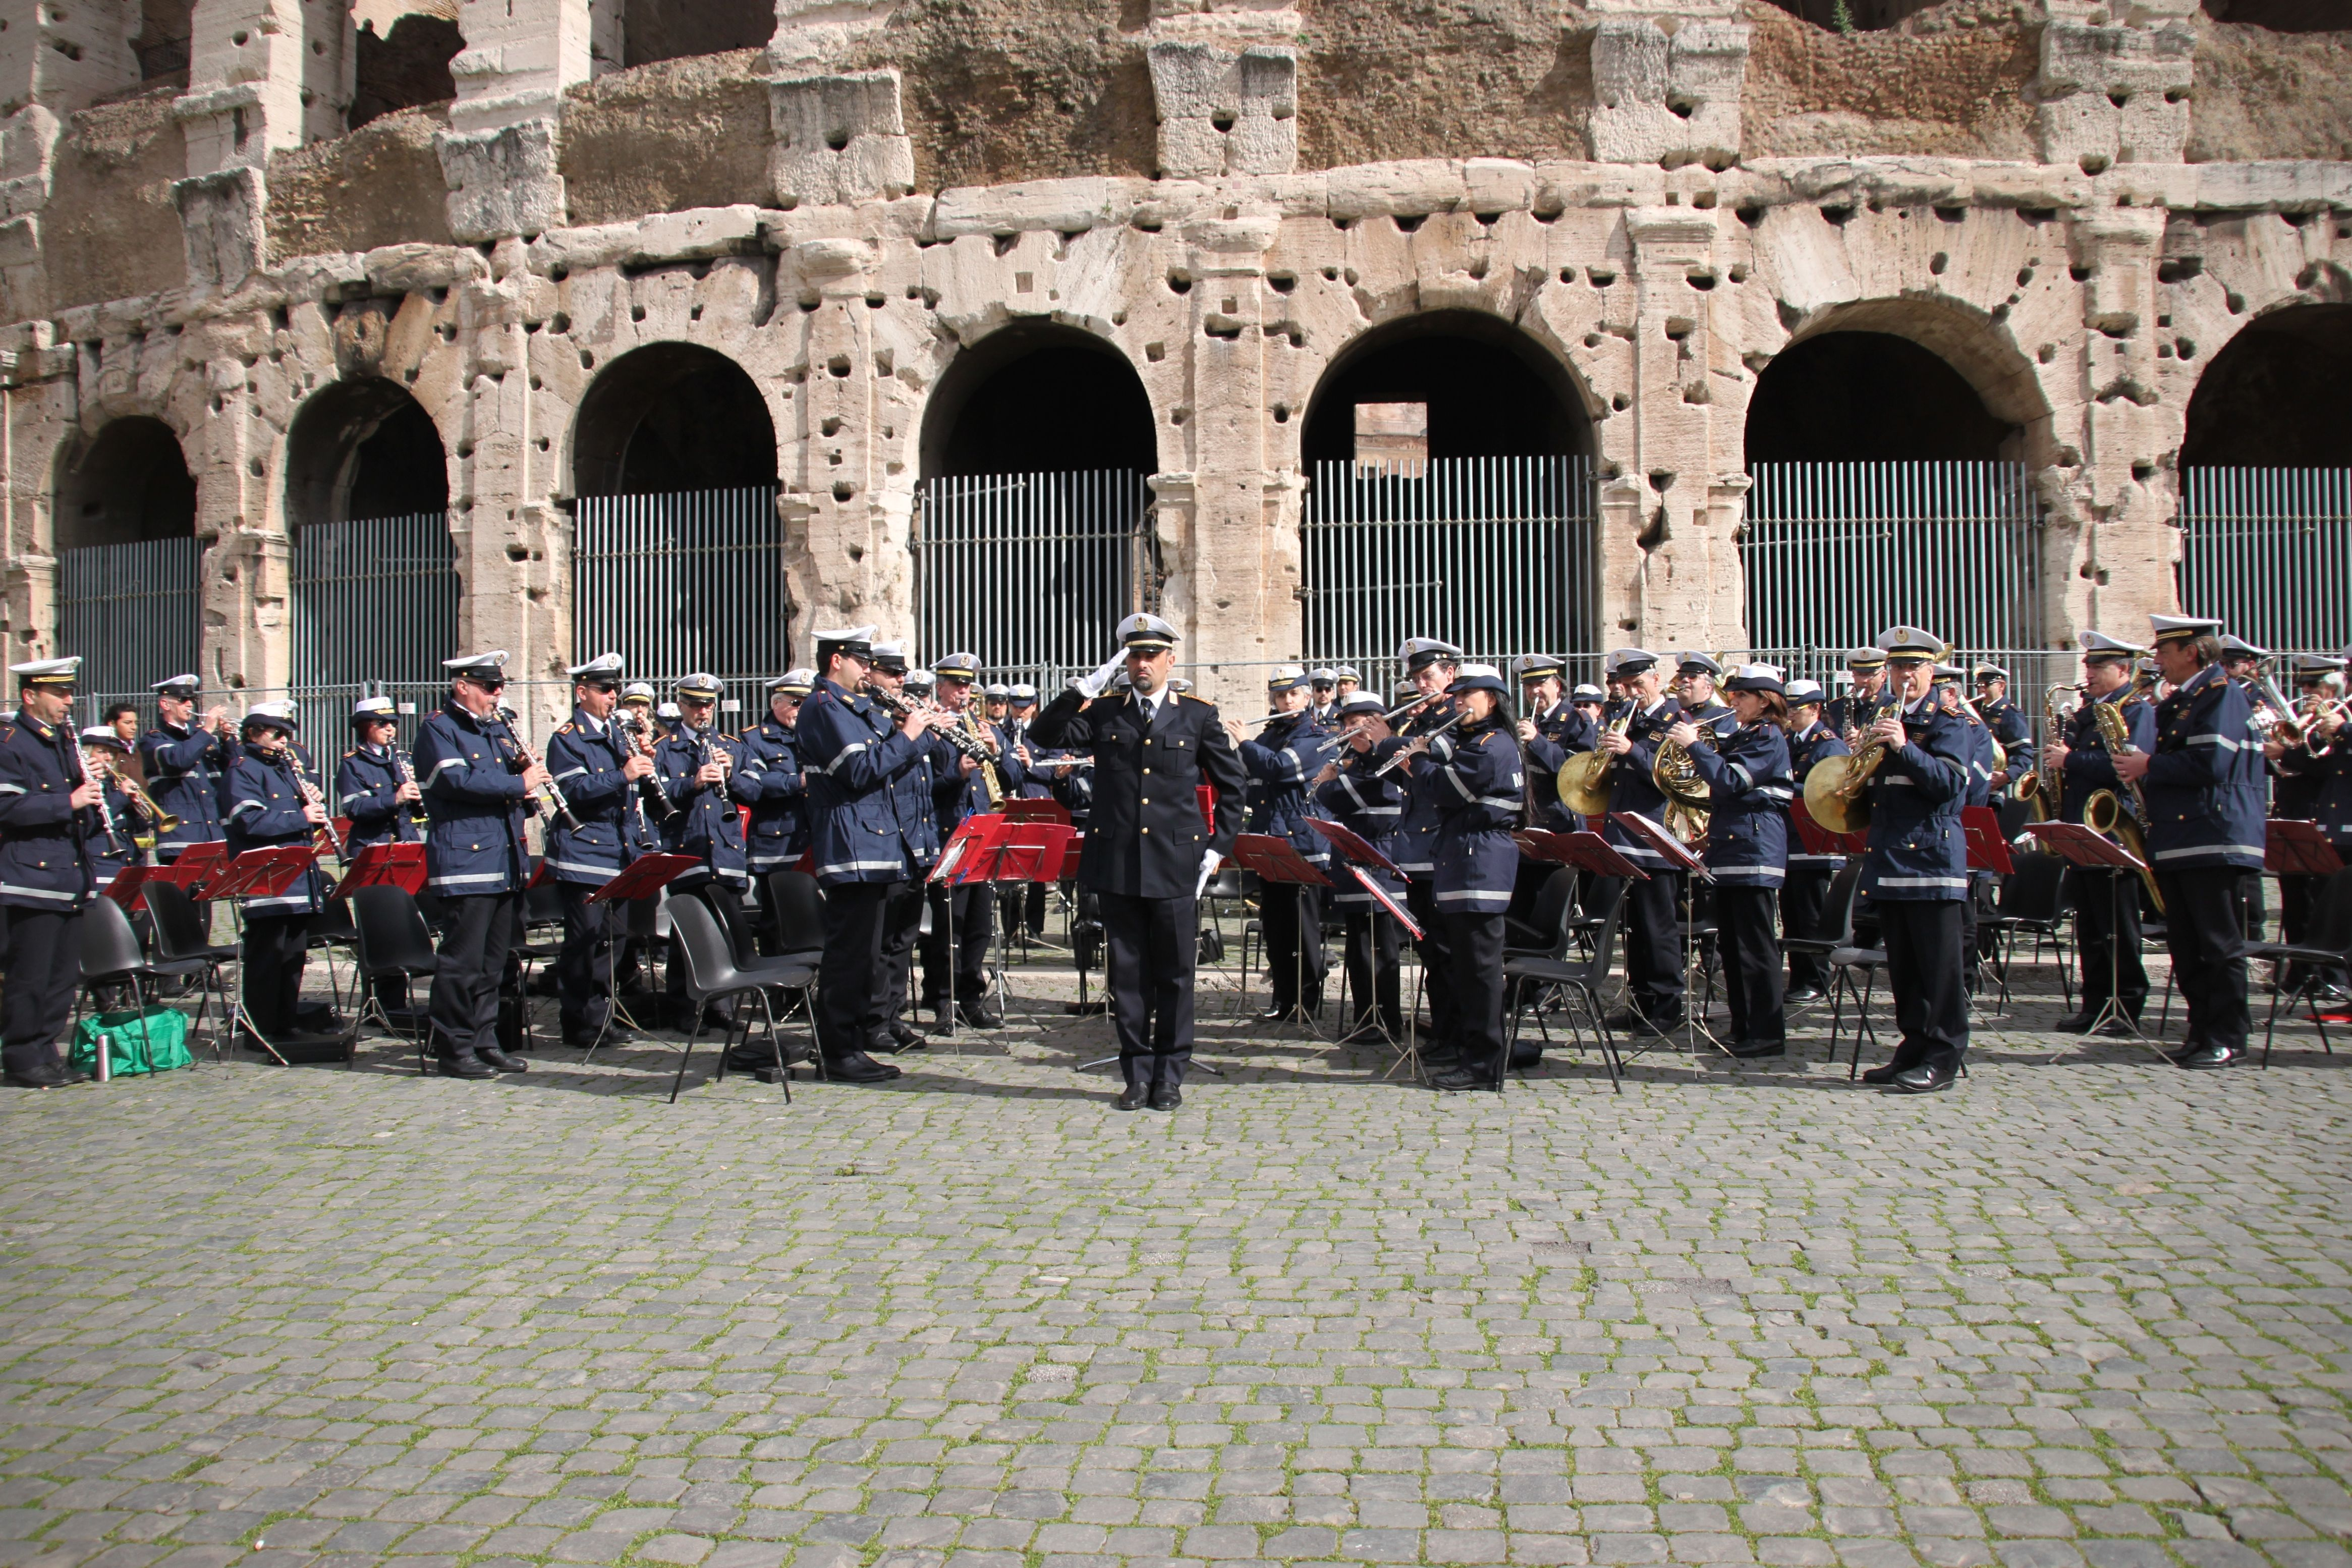 The Polizia Municipale Brass Band playing in front of the Colosseum